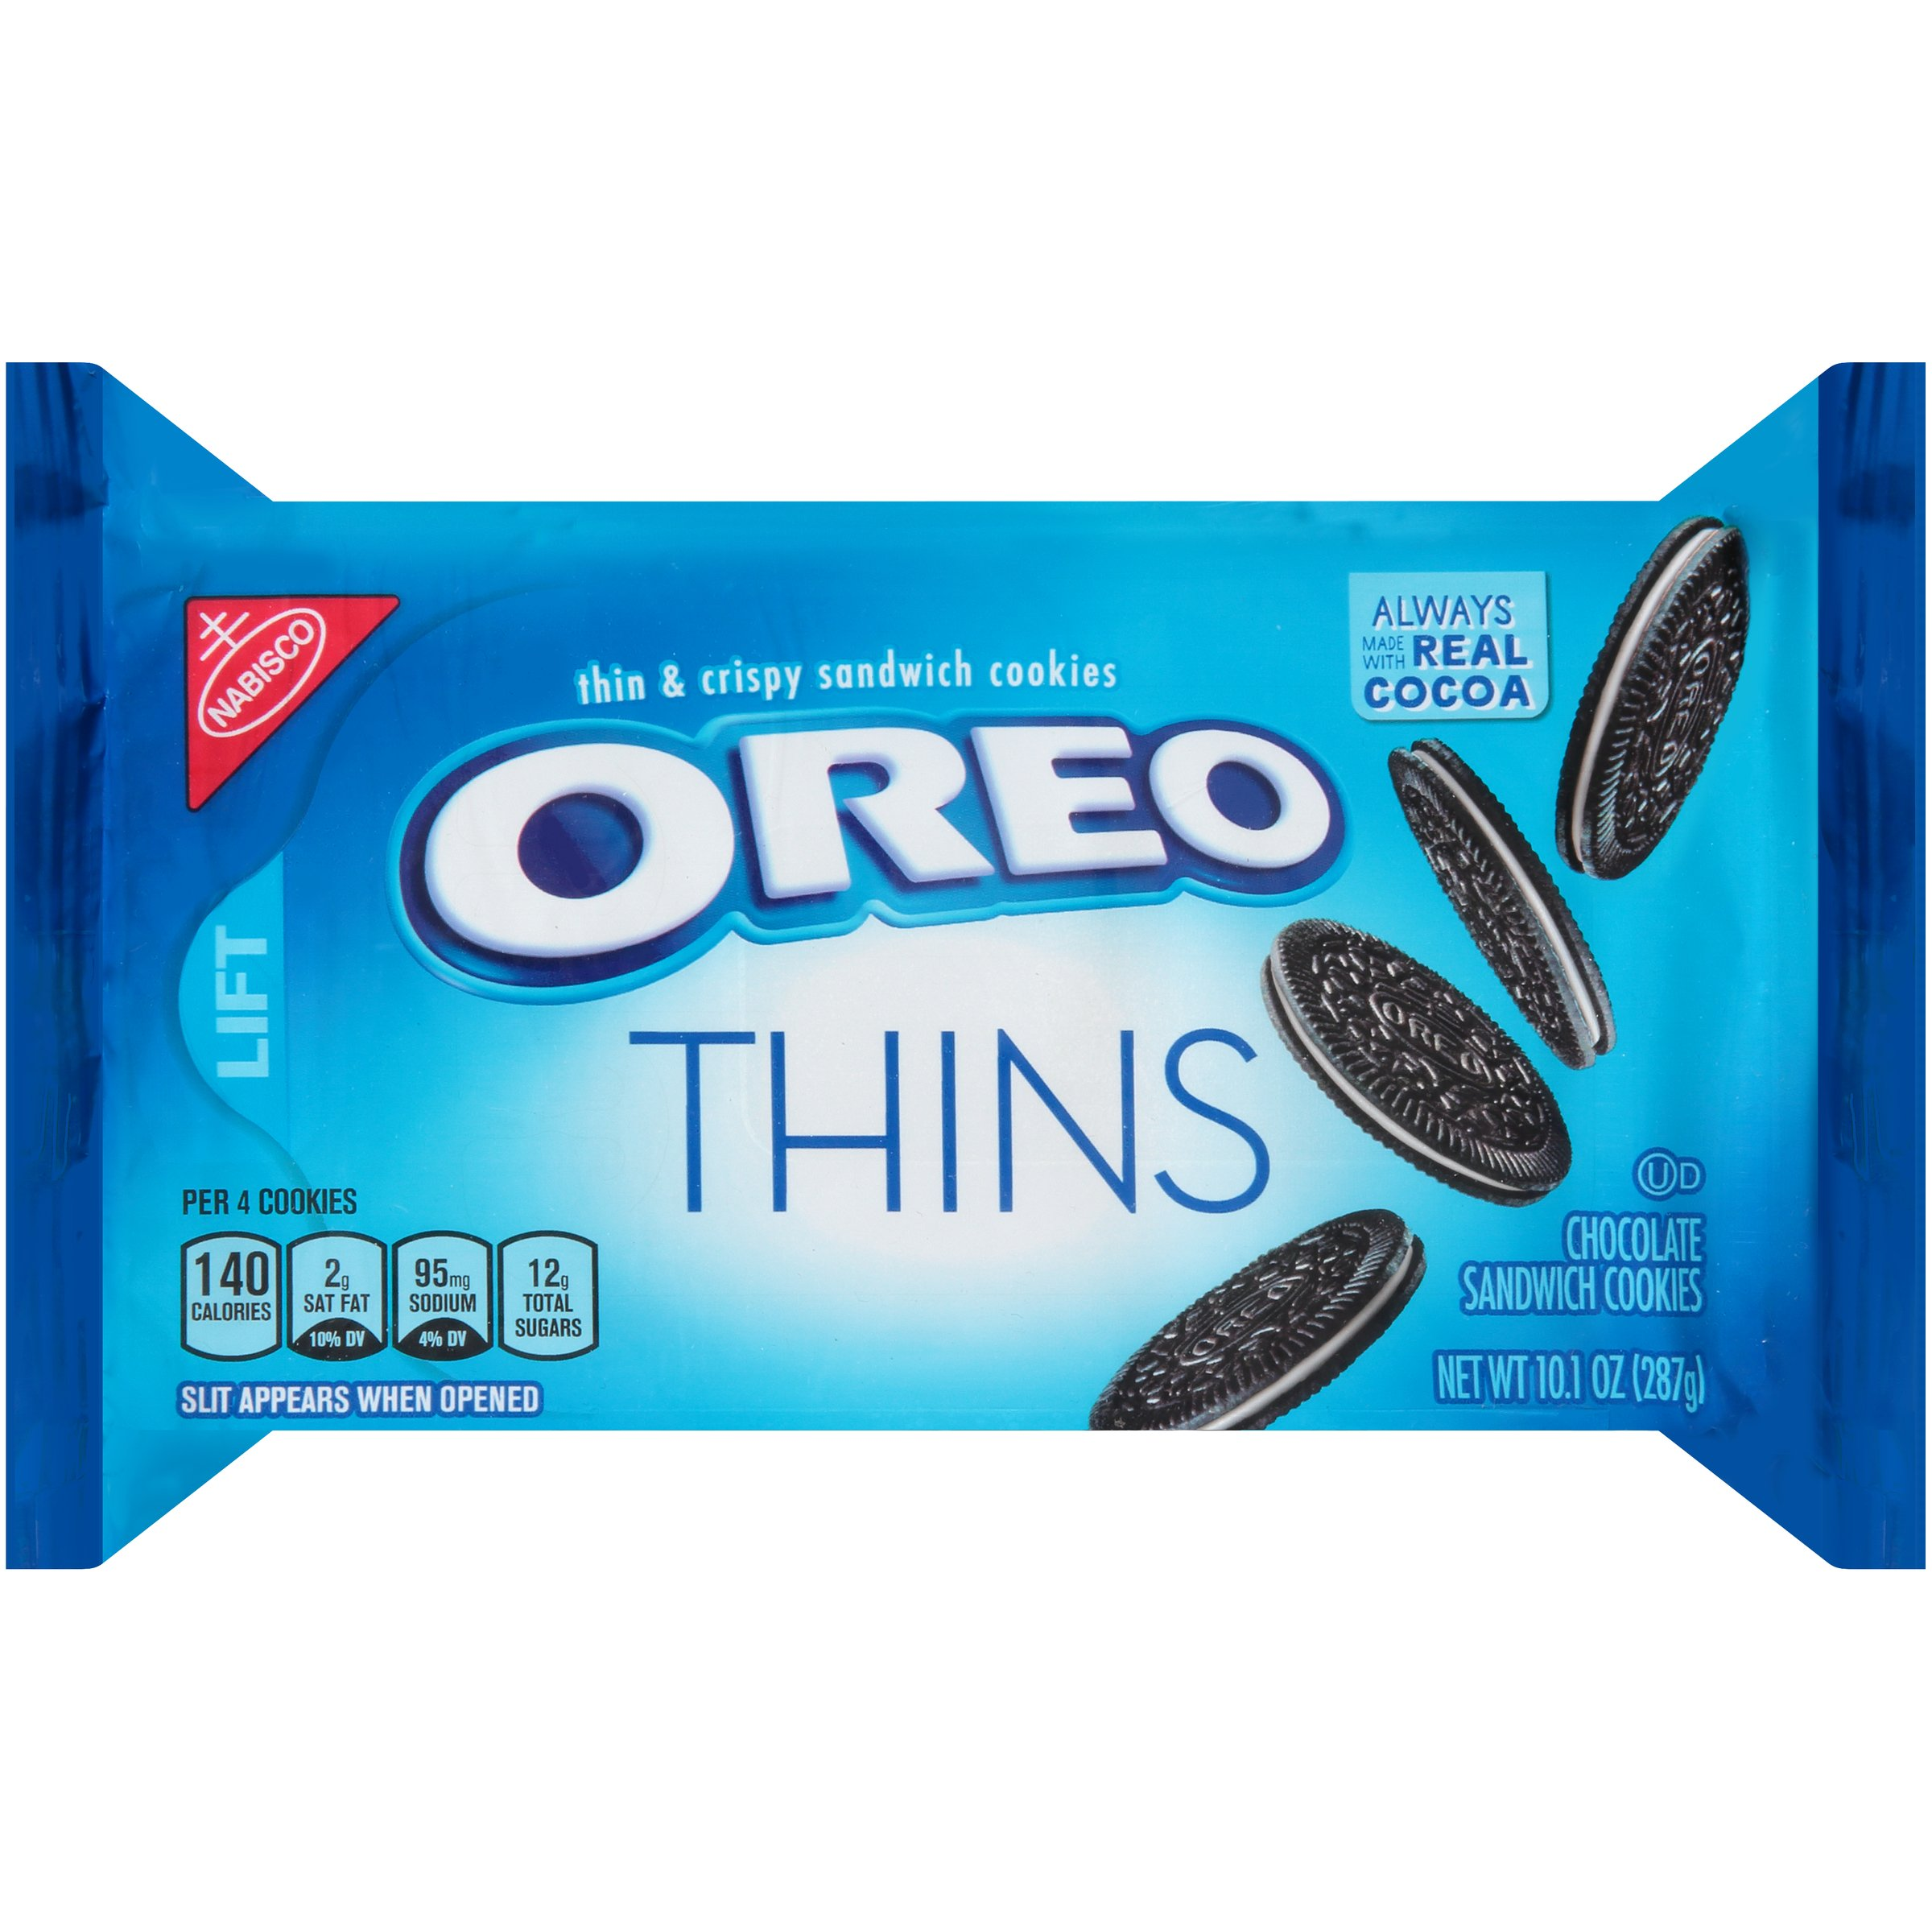 OREO Thins Chocolate Sandwich Cookies, Original Flavor, 12 Resealable 10.1 oz Packs